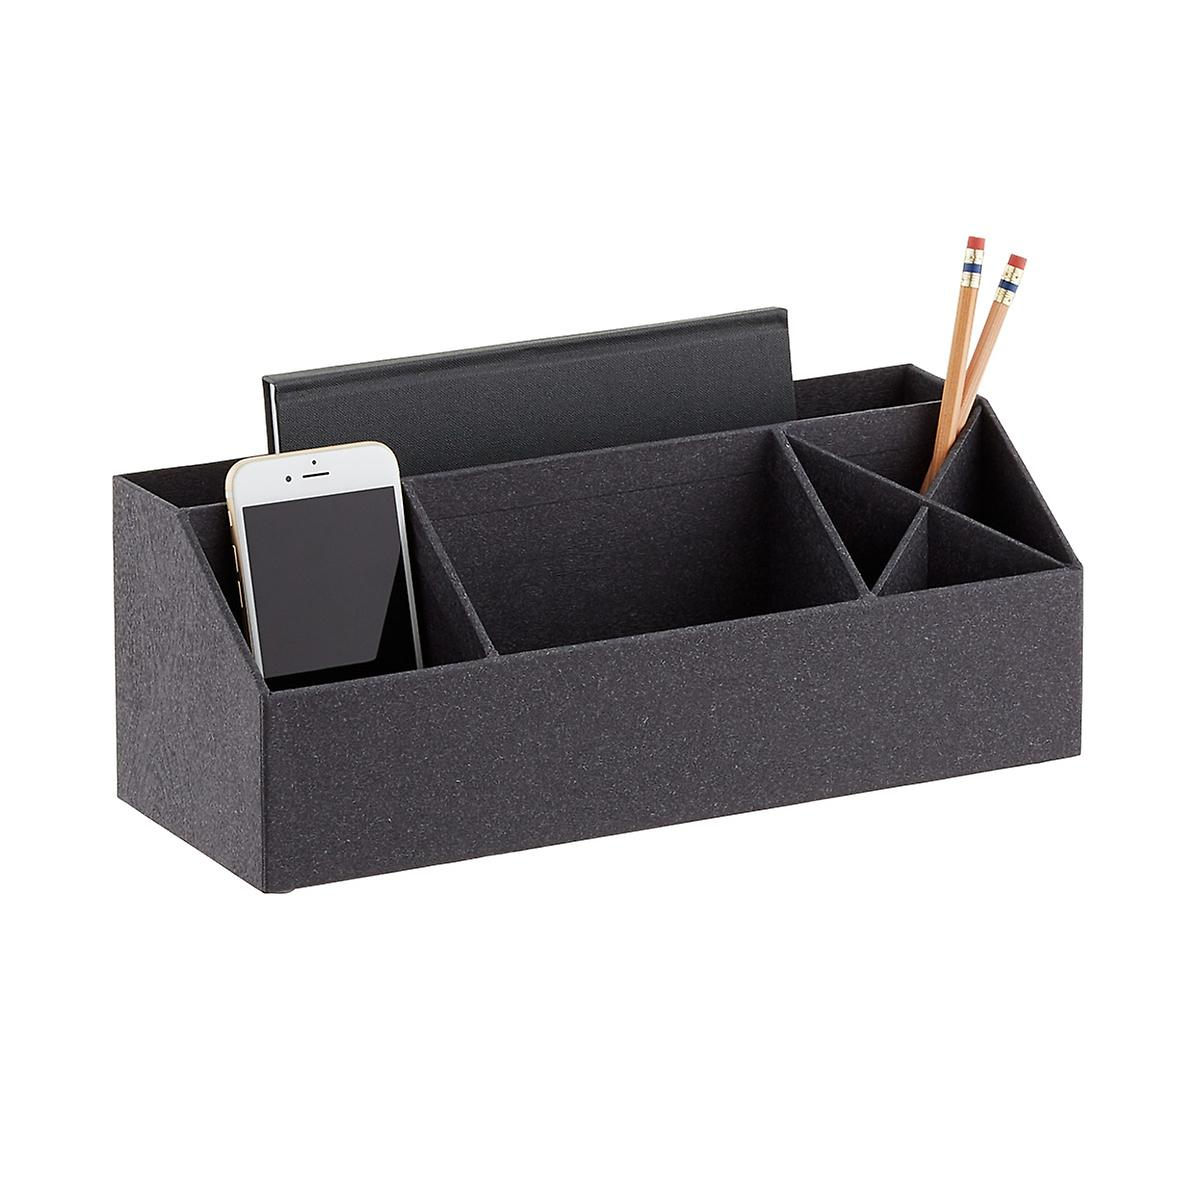 Bigso Black Woodgrain Desk Accessory Organizer